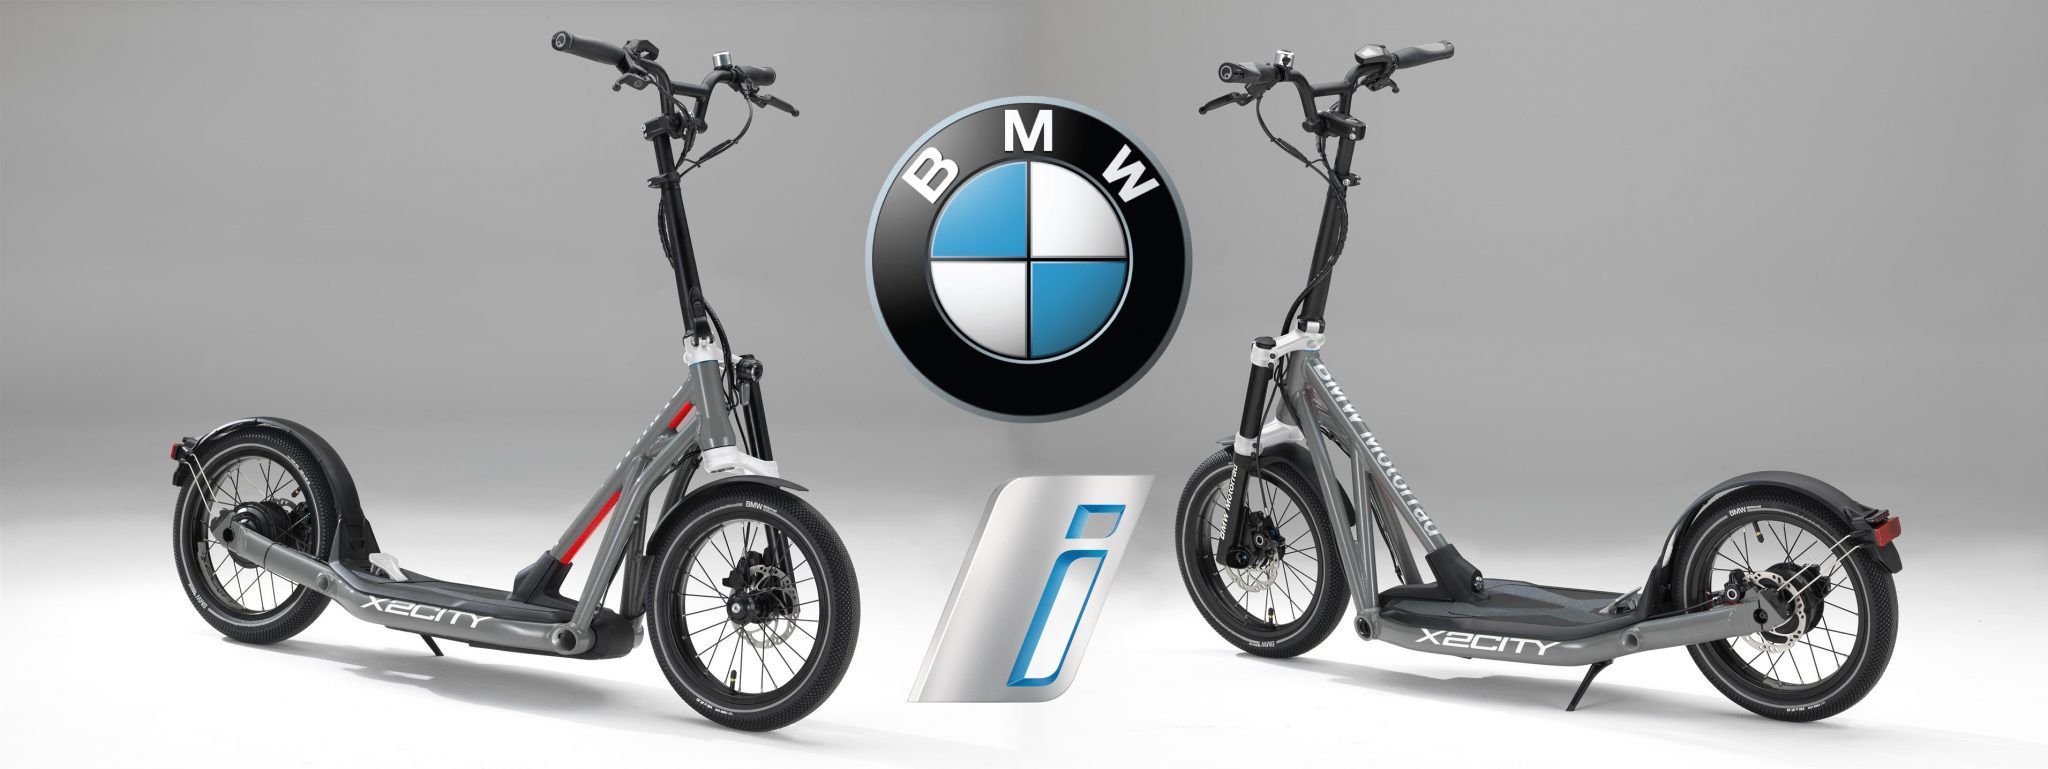 Bmw Motorrad X2city Su Prototipo De Patinete Stationary Bike Bike Tricycle